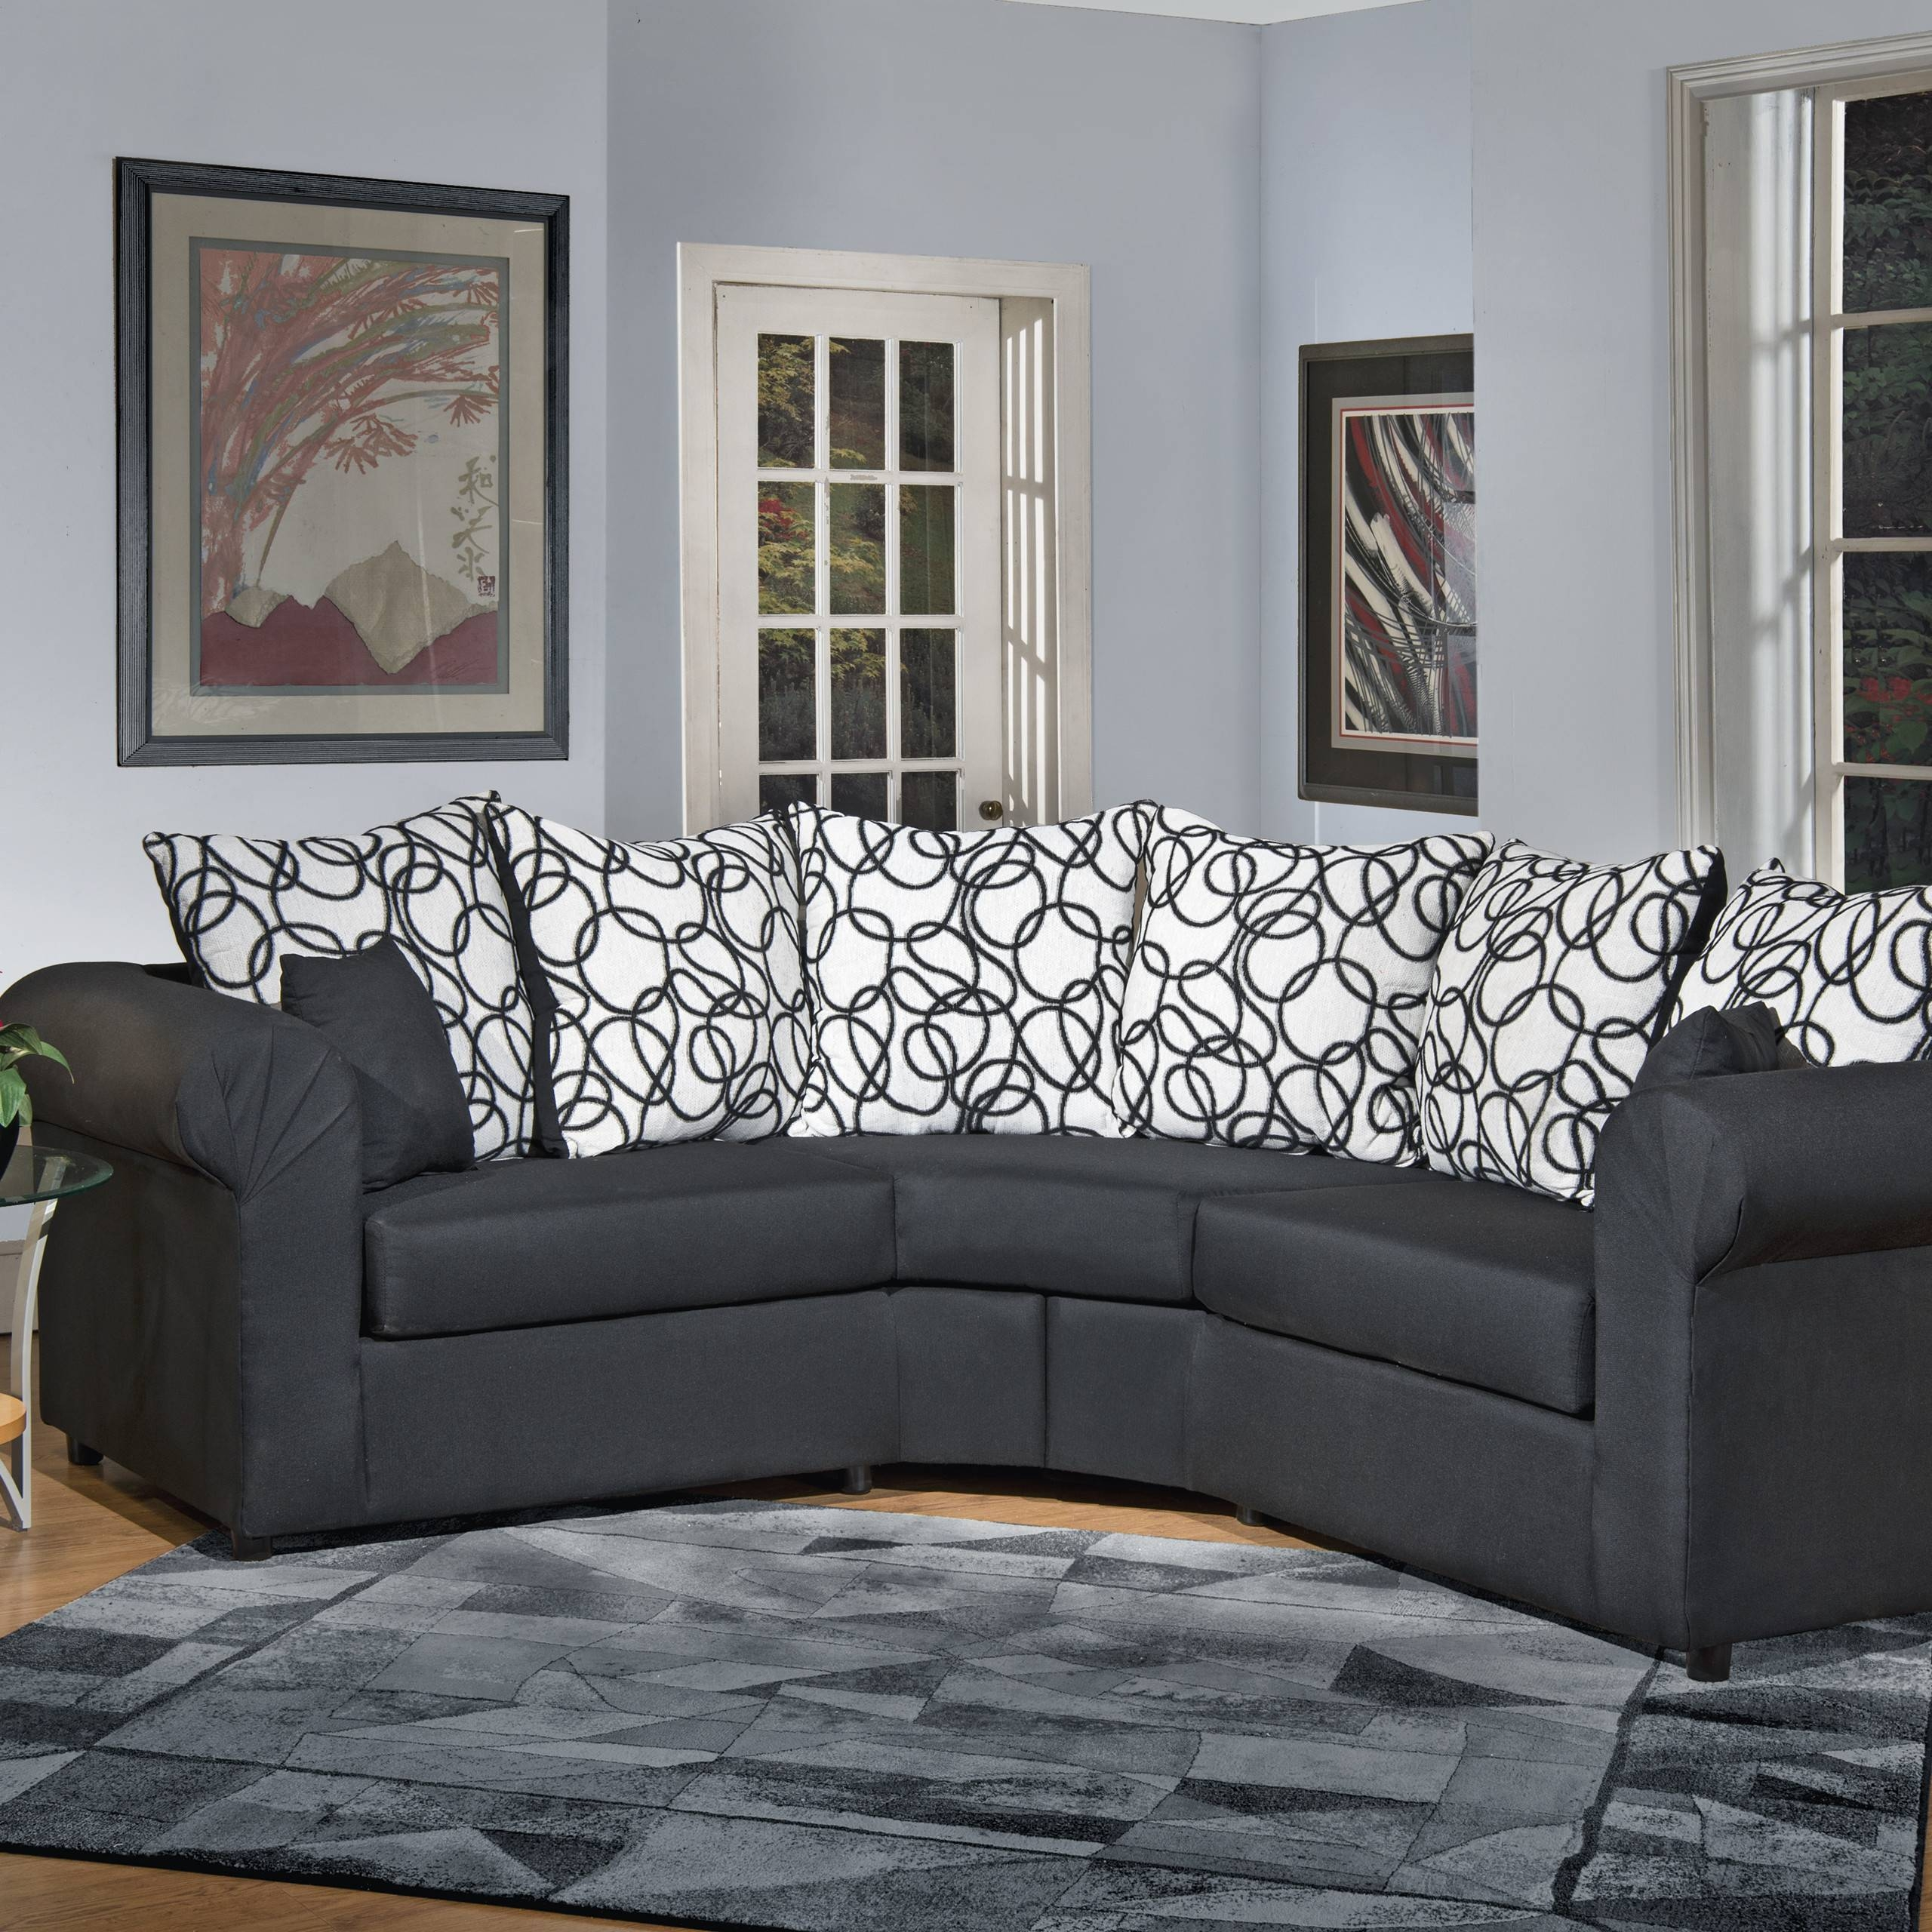 Furniture & Sofa: Perfect Small Spaces Configurable Sectional Sofa intended for Small 2 Piece Sectional Sofas (Image 15 of 30)